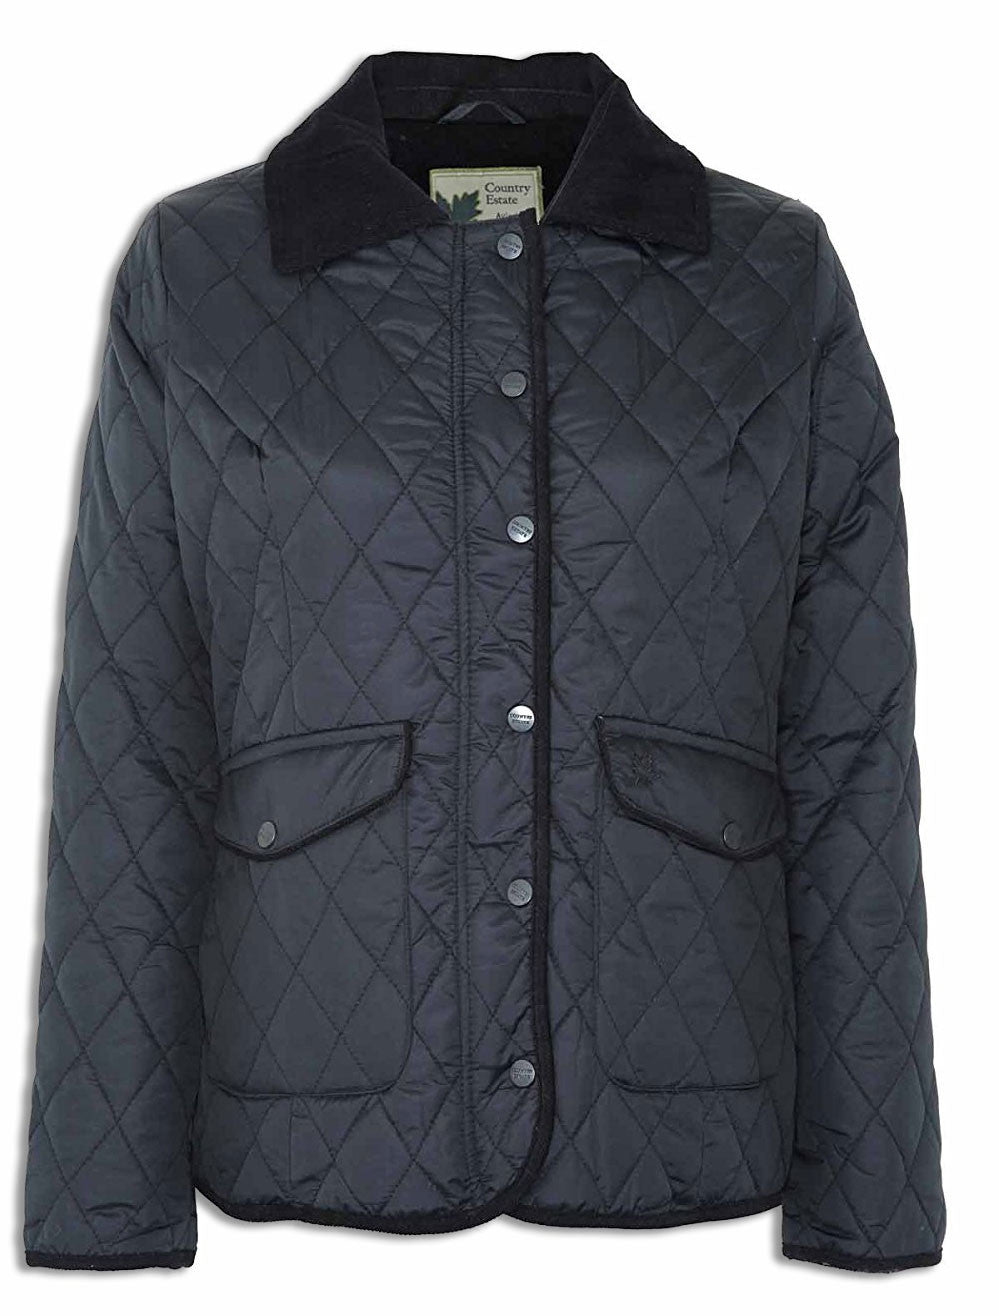 Champion Aylesbury Diamond Quilted Women's Jacket – Hollands ... : ladies quilted jacket sale - Adamdwight.com